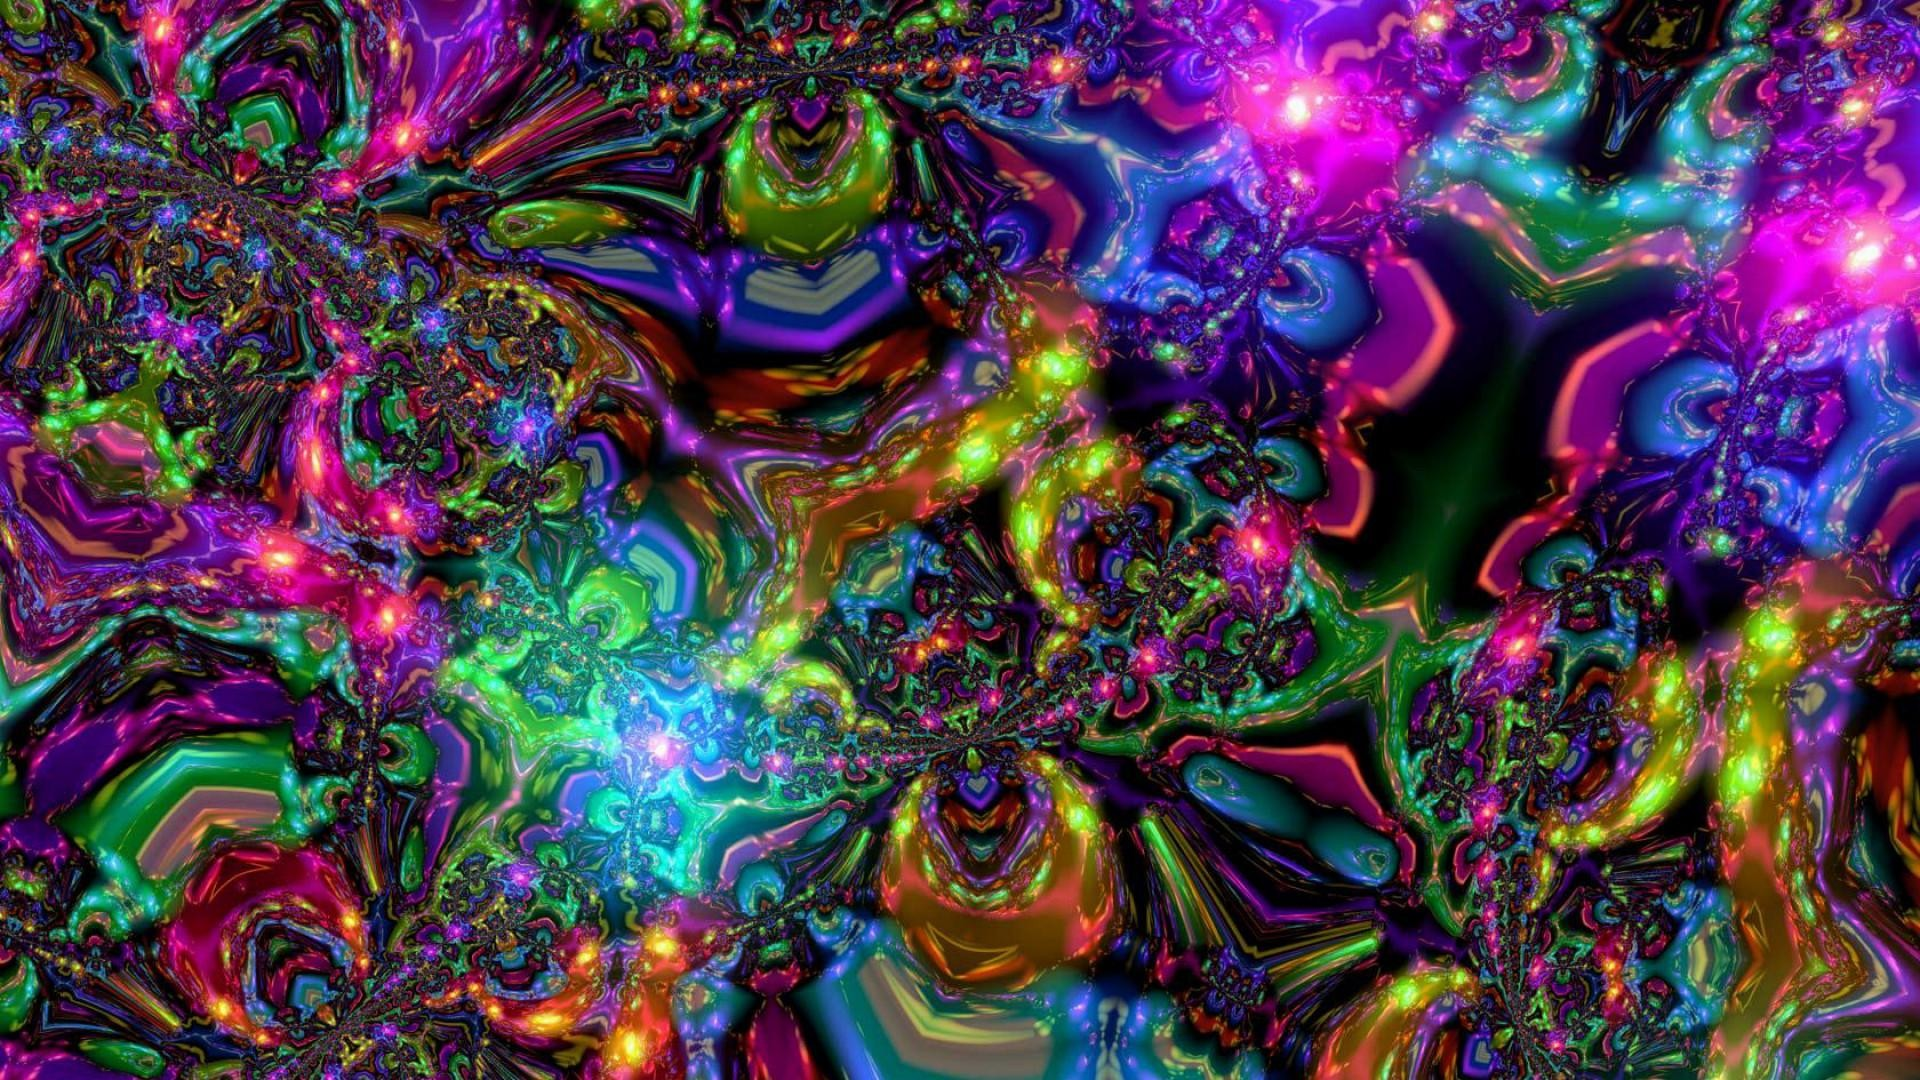 abstract-art-tattoos-psychedelic-art-abstract-trippy-1920×1080-